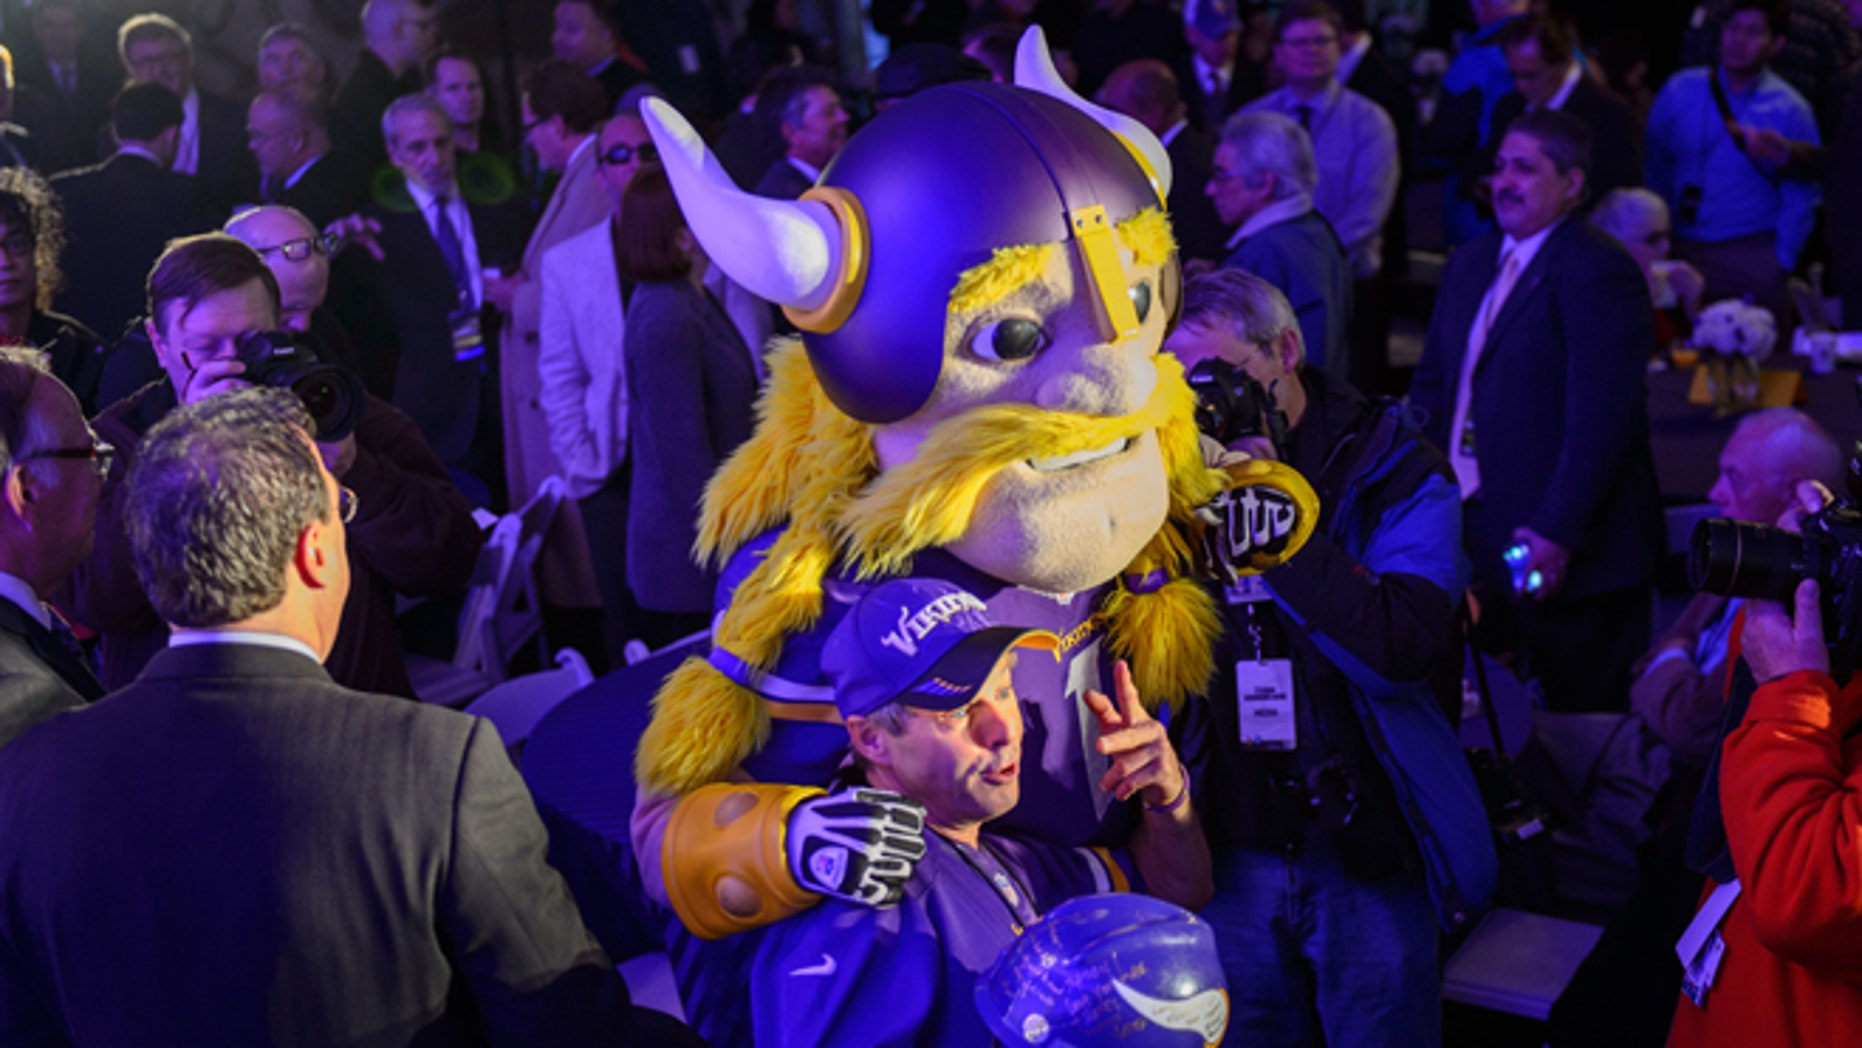 FILE: Dec. 3, 2013: A Minnesota Vikings fan with the team mascot during the groundbreaking ceremony for the new Vikings stadium, in Minneapolis, Minn.